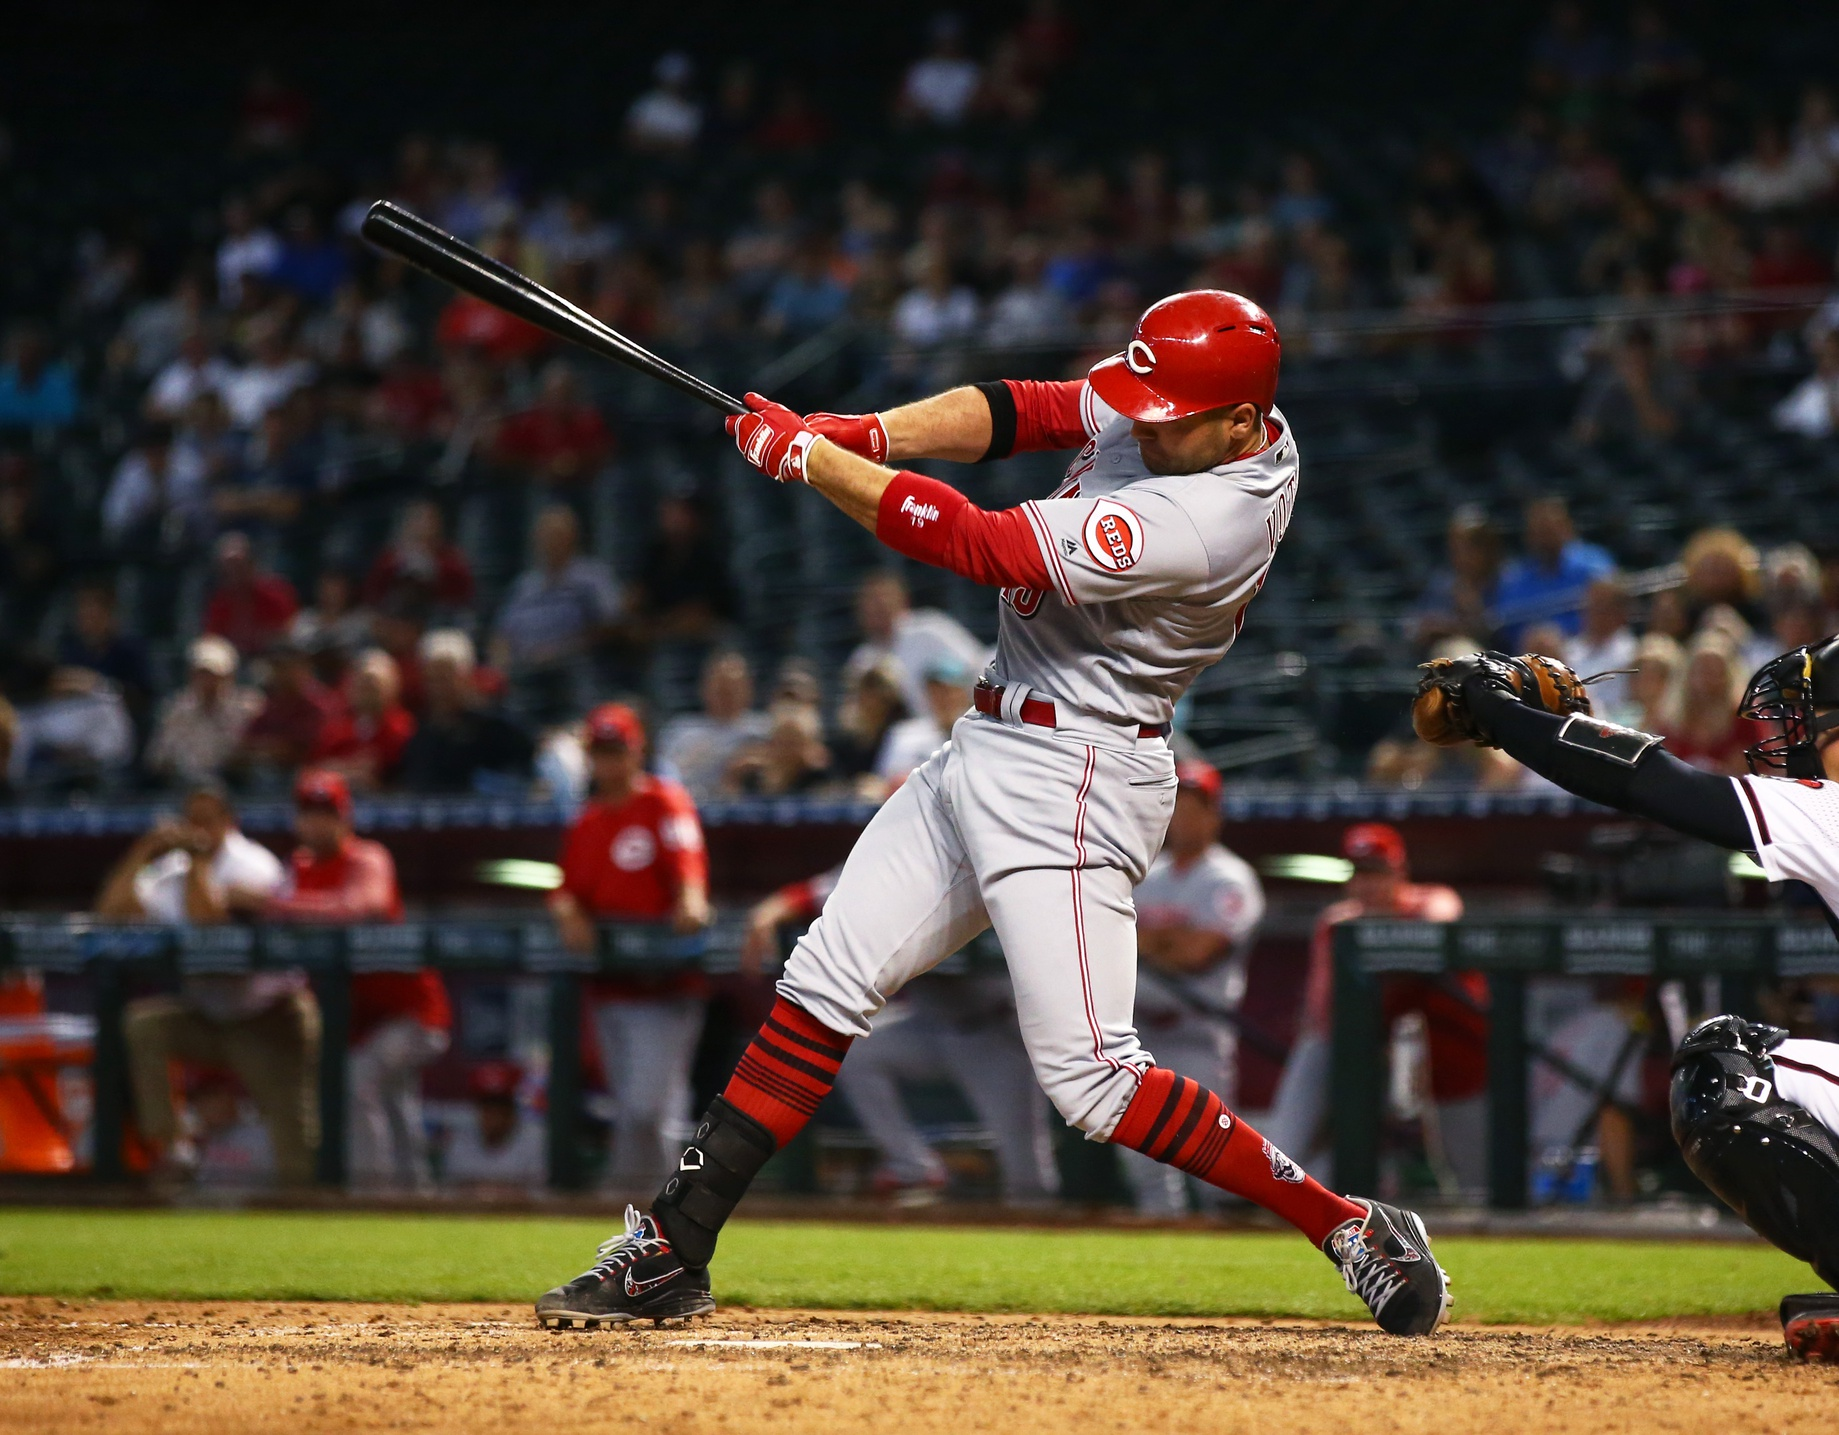 May 30, 2018; Phoenix, AZ, USA; Cincinnati Reds first baseman Joey Votto against the Arizona Diamondbacks at Chase Field. Mandatory Credit: Mark J. Rebilas-USA TODAY Sports